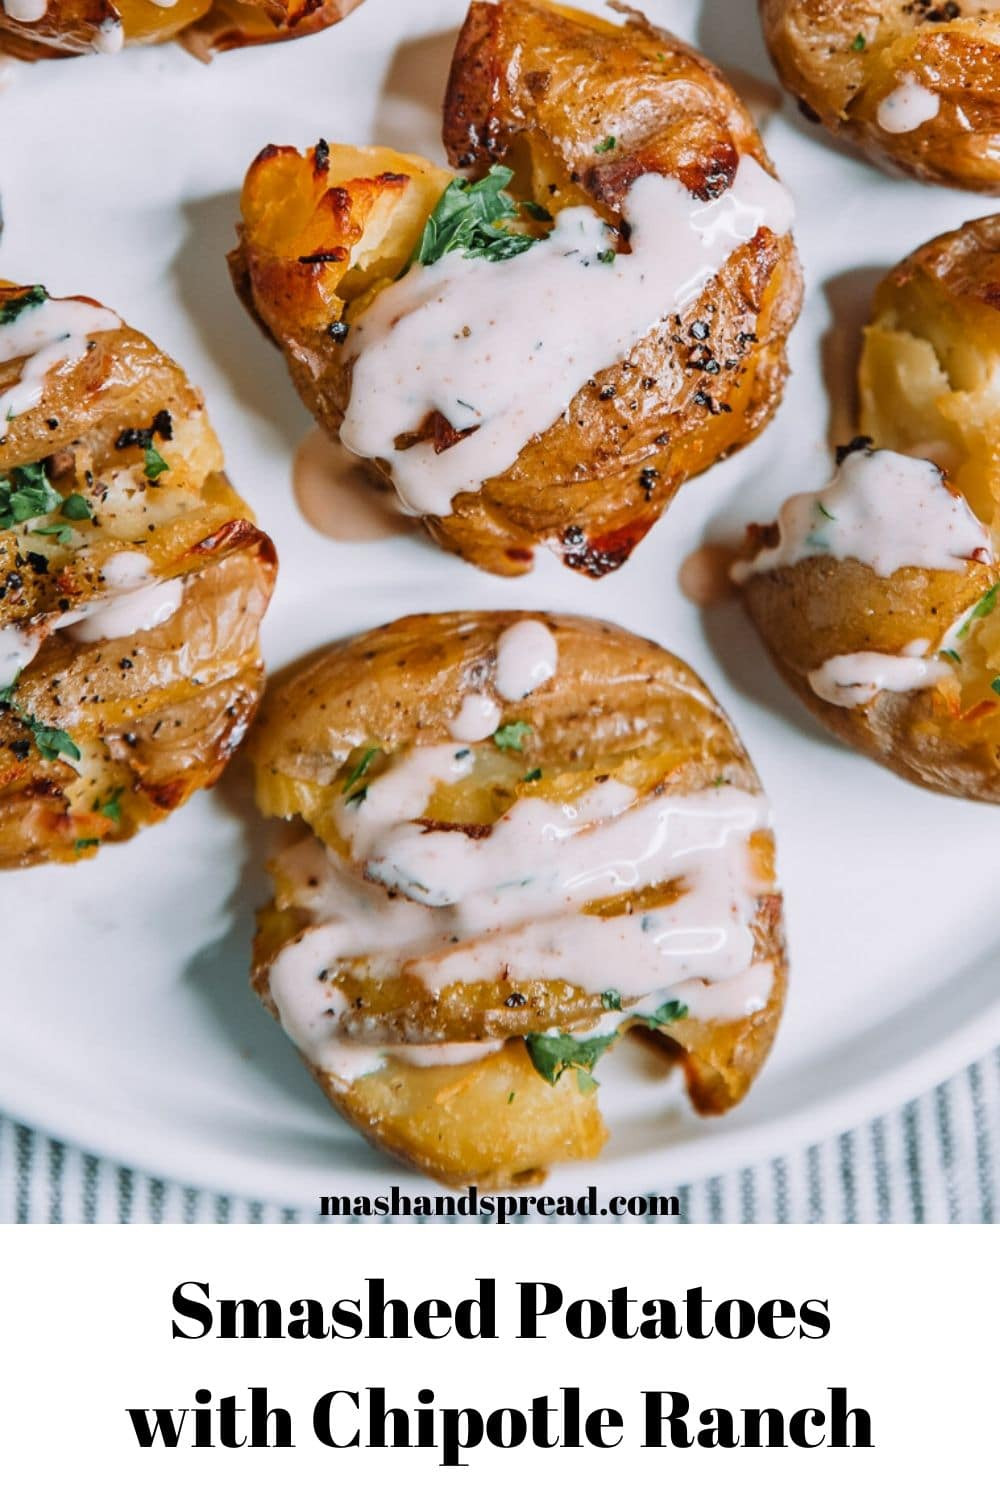 Smashed Potatoes with Chipotle Ranch by Mash and Spread.